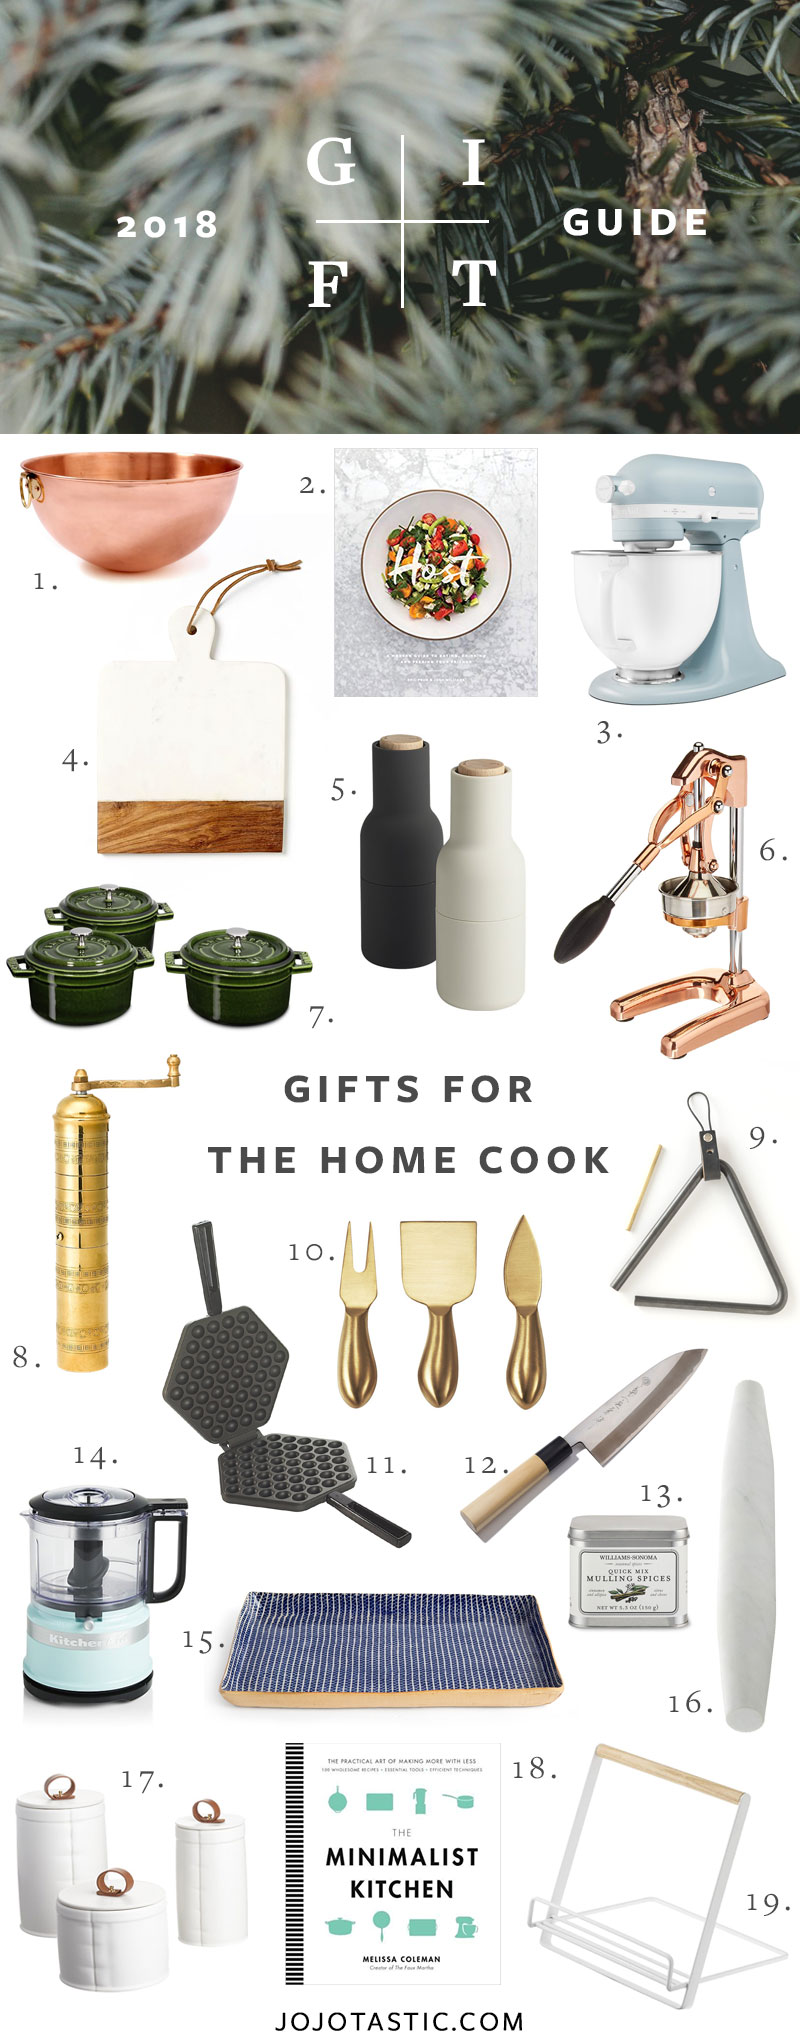 Home Cook Gift Ideas, Gift Guide for Christmas & Holidays 2018 via jojotastic.com #giftguide #giftidea #giftgiving #gifts #presents #christmaspresents #christmasgiftideas #christmasgift #homecook #cookinggifts #hostessgifts